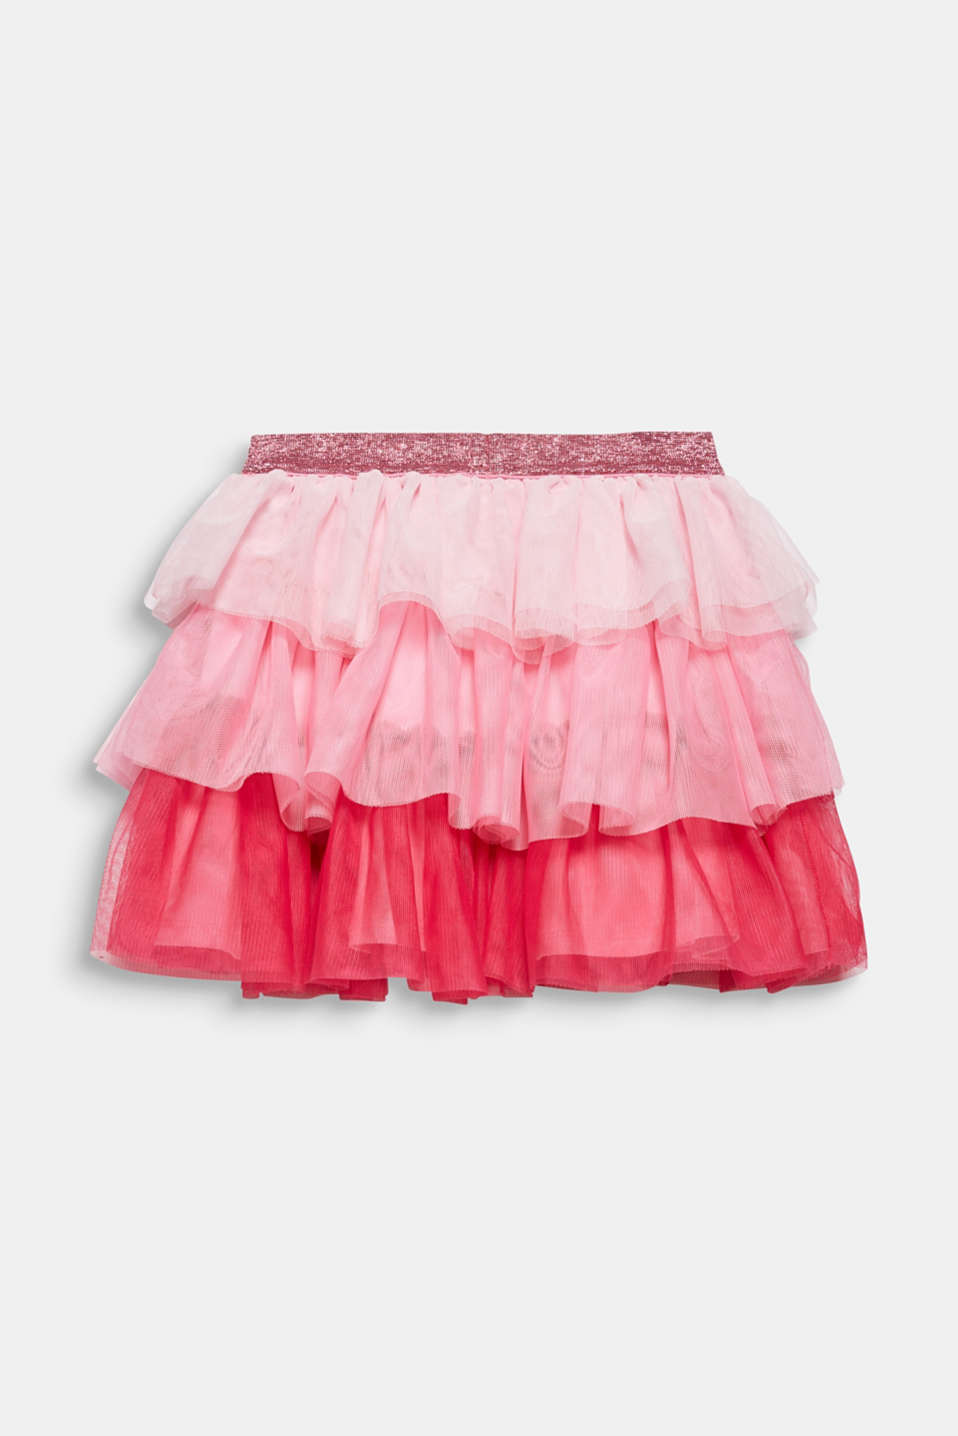 Layered skirt made of tulle with a glitter waistband, CANDY PINK, detail image number 2